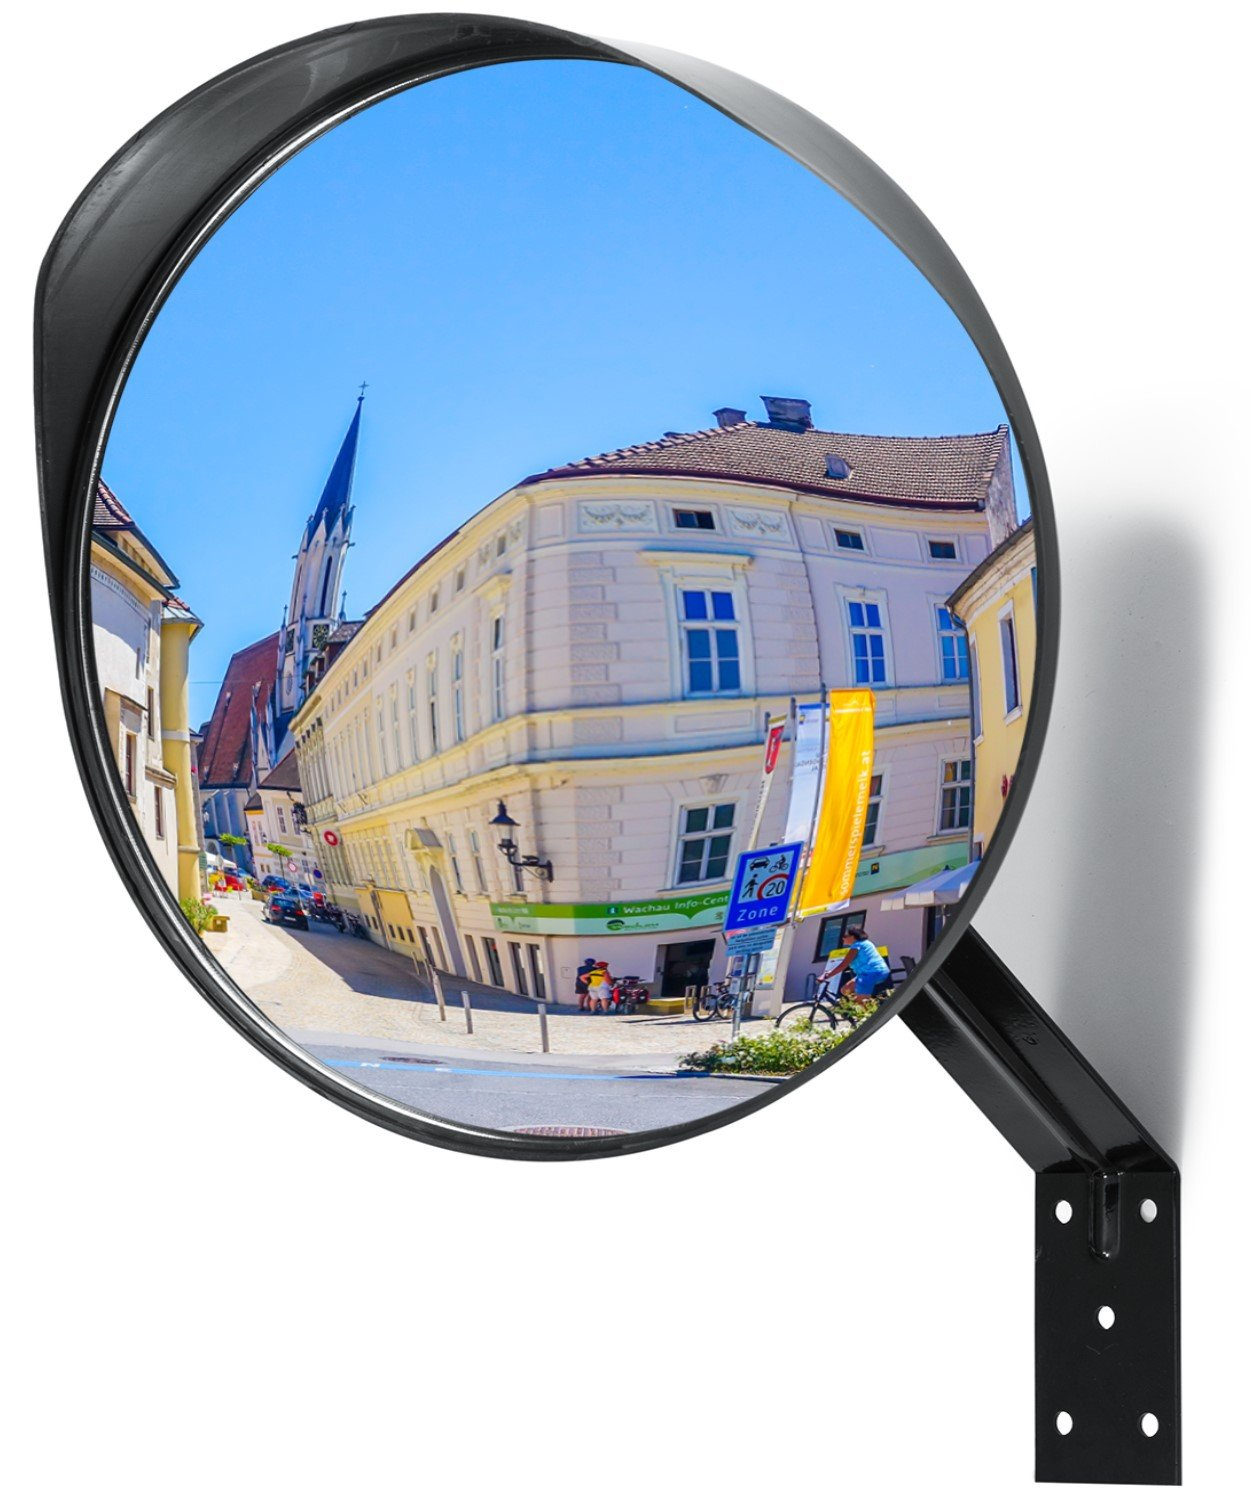 Adjustable Convex Mirror - Clear View Garage and Driveway Park Assistant - 12